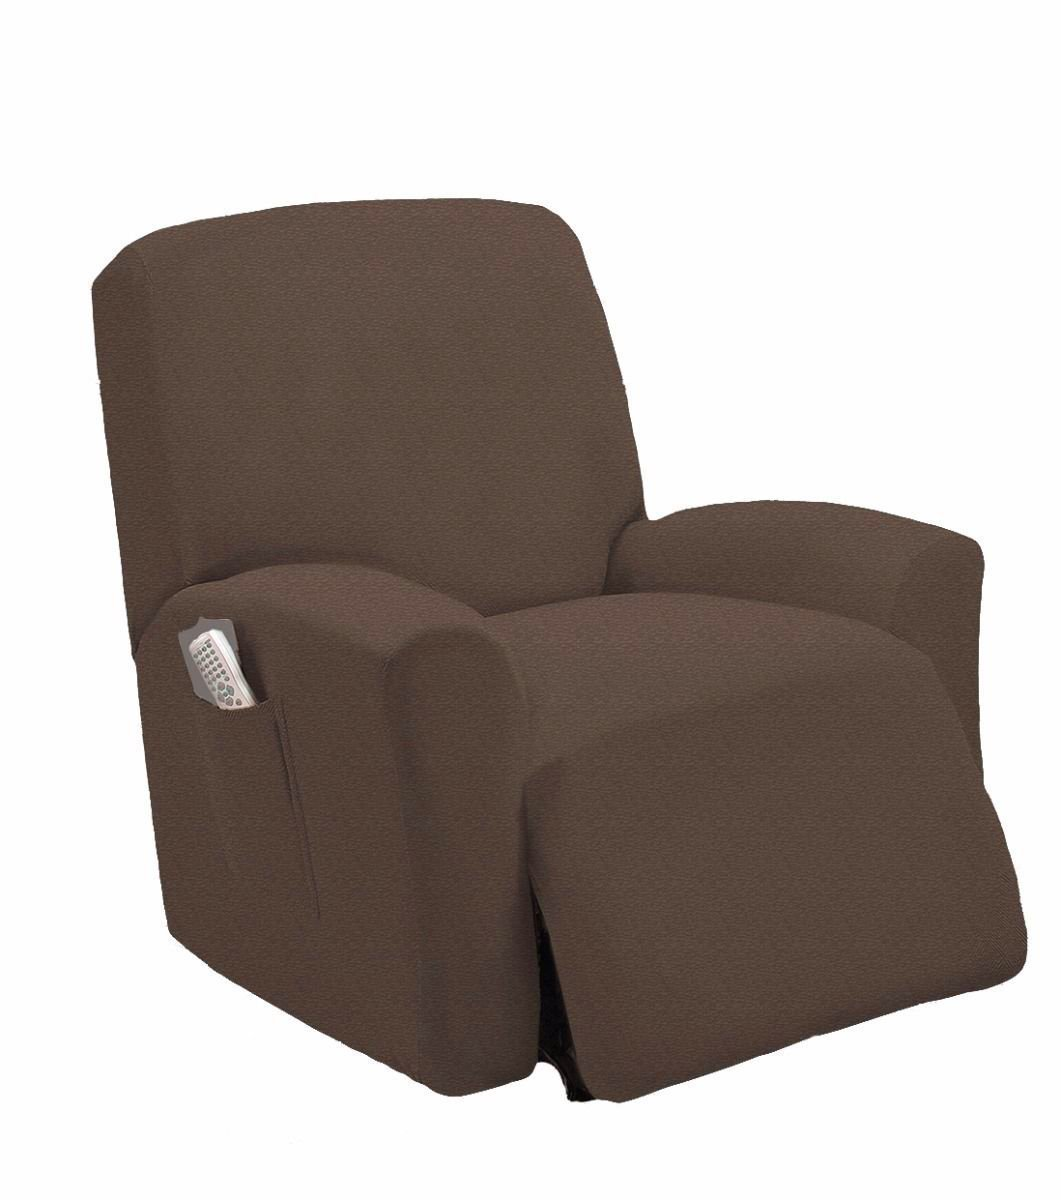 MK Home Mk Collection Stretch To Fit Recliner Slipcover Solid Black New